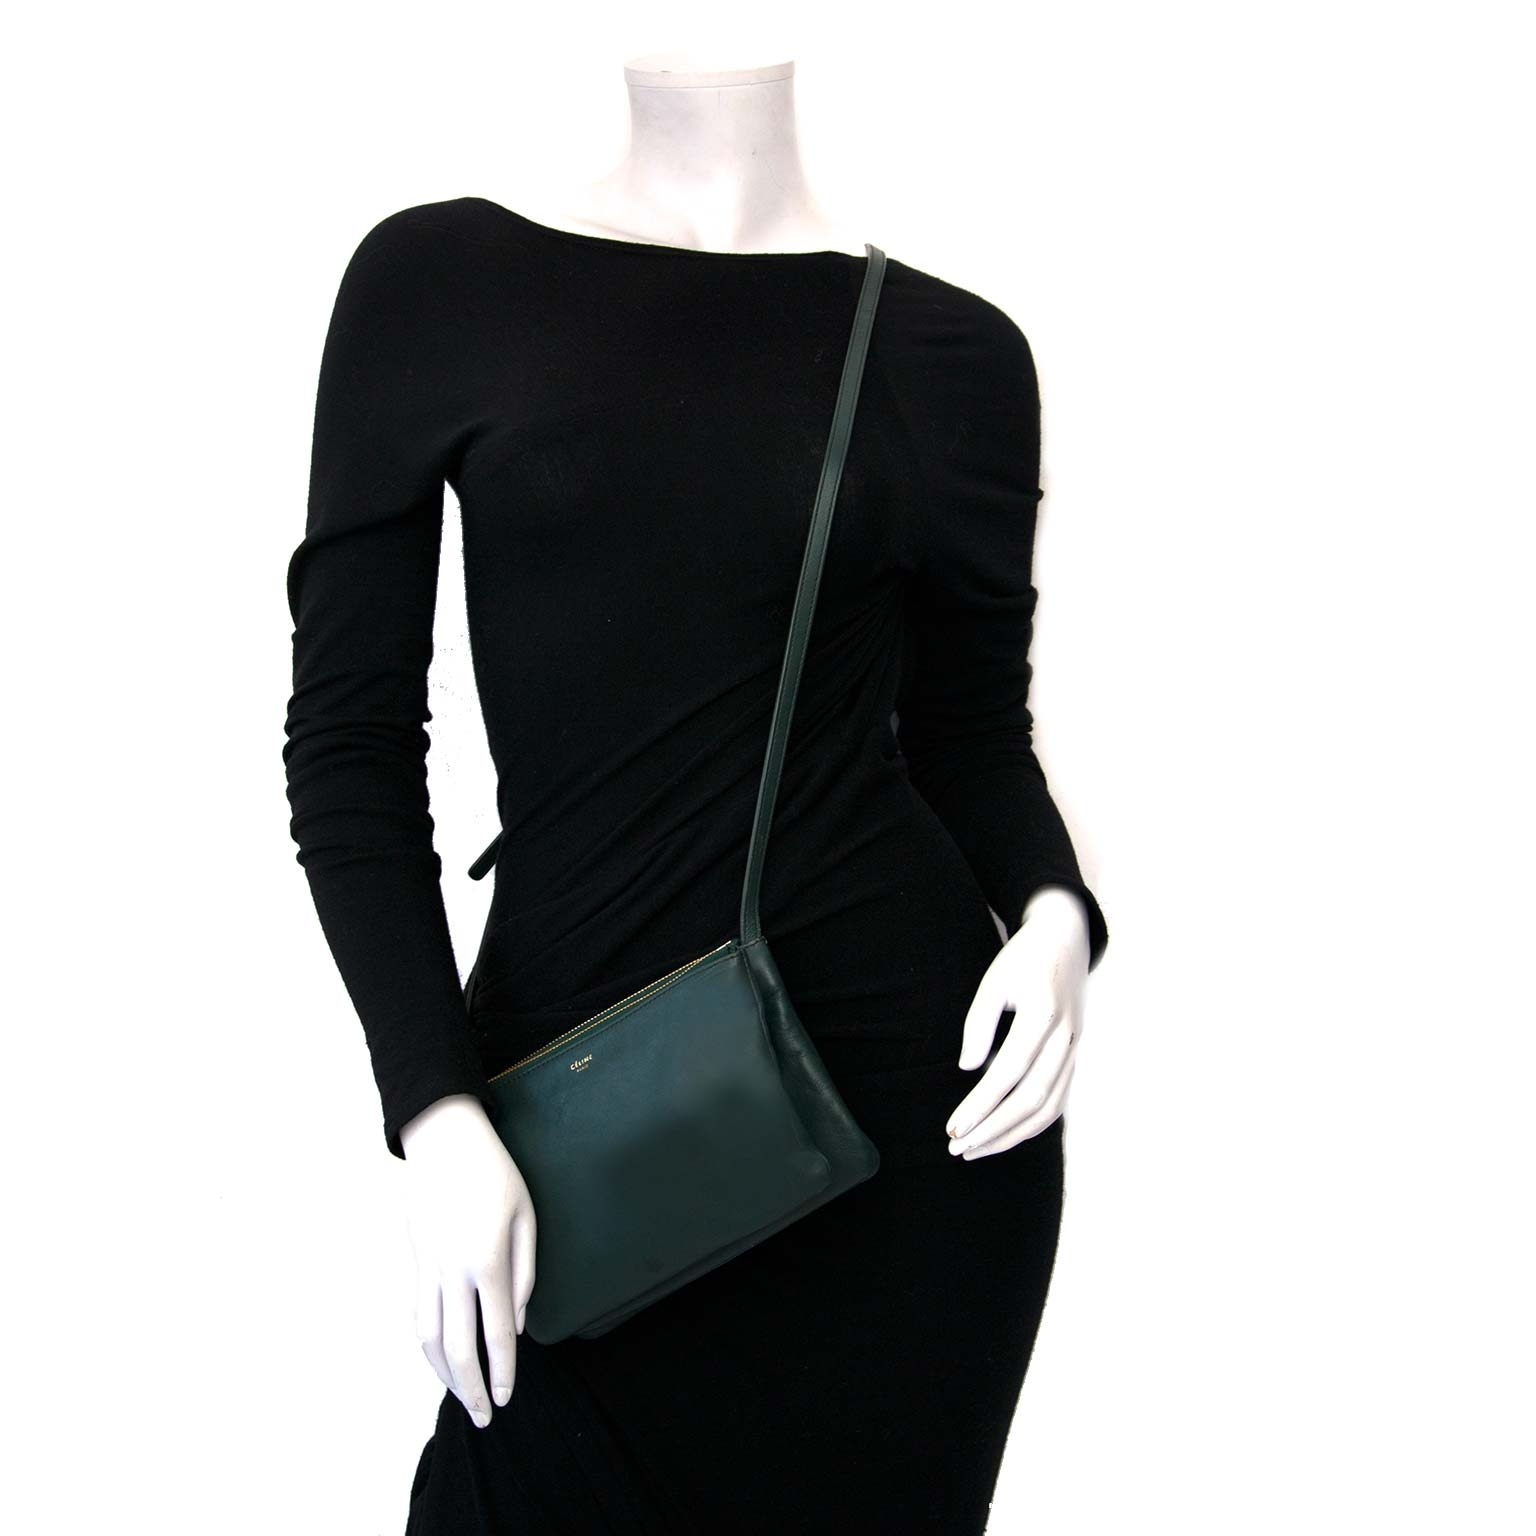 Céline Green Leather Trio Crossbody Bag  Buy authentic designer Celine secondhand bags at Labellov at the best price. Safe and secure shopping. Koop tweedehands authentieke Celine tassen bij designer webwinkel labellov.